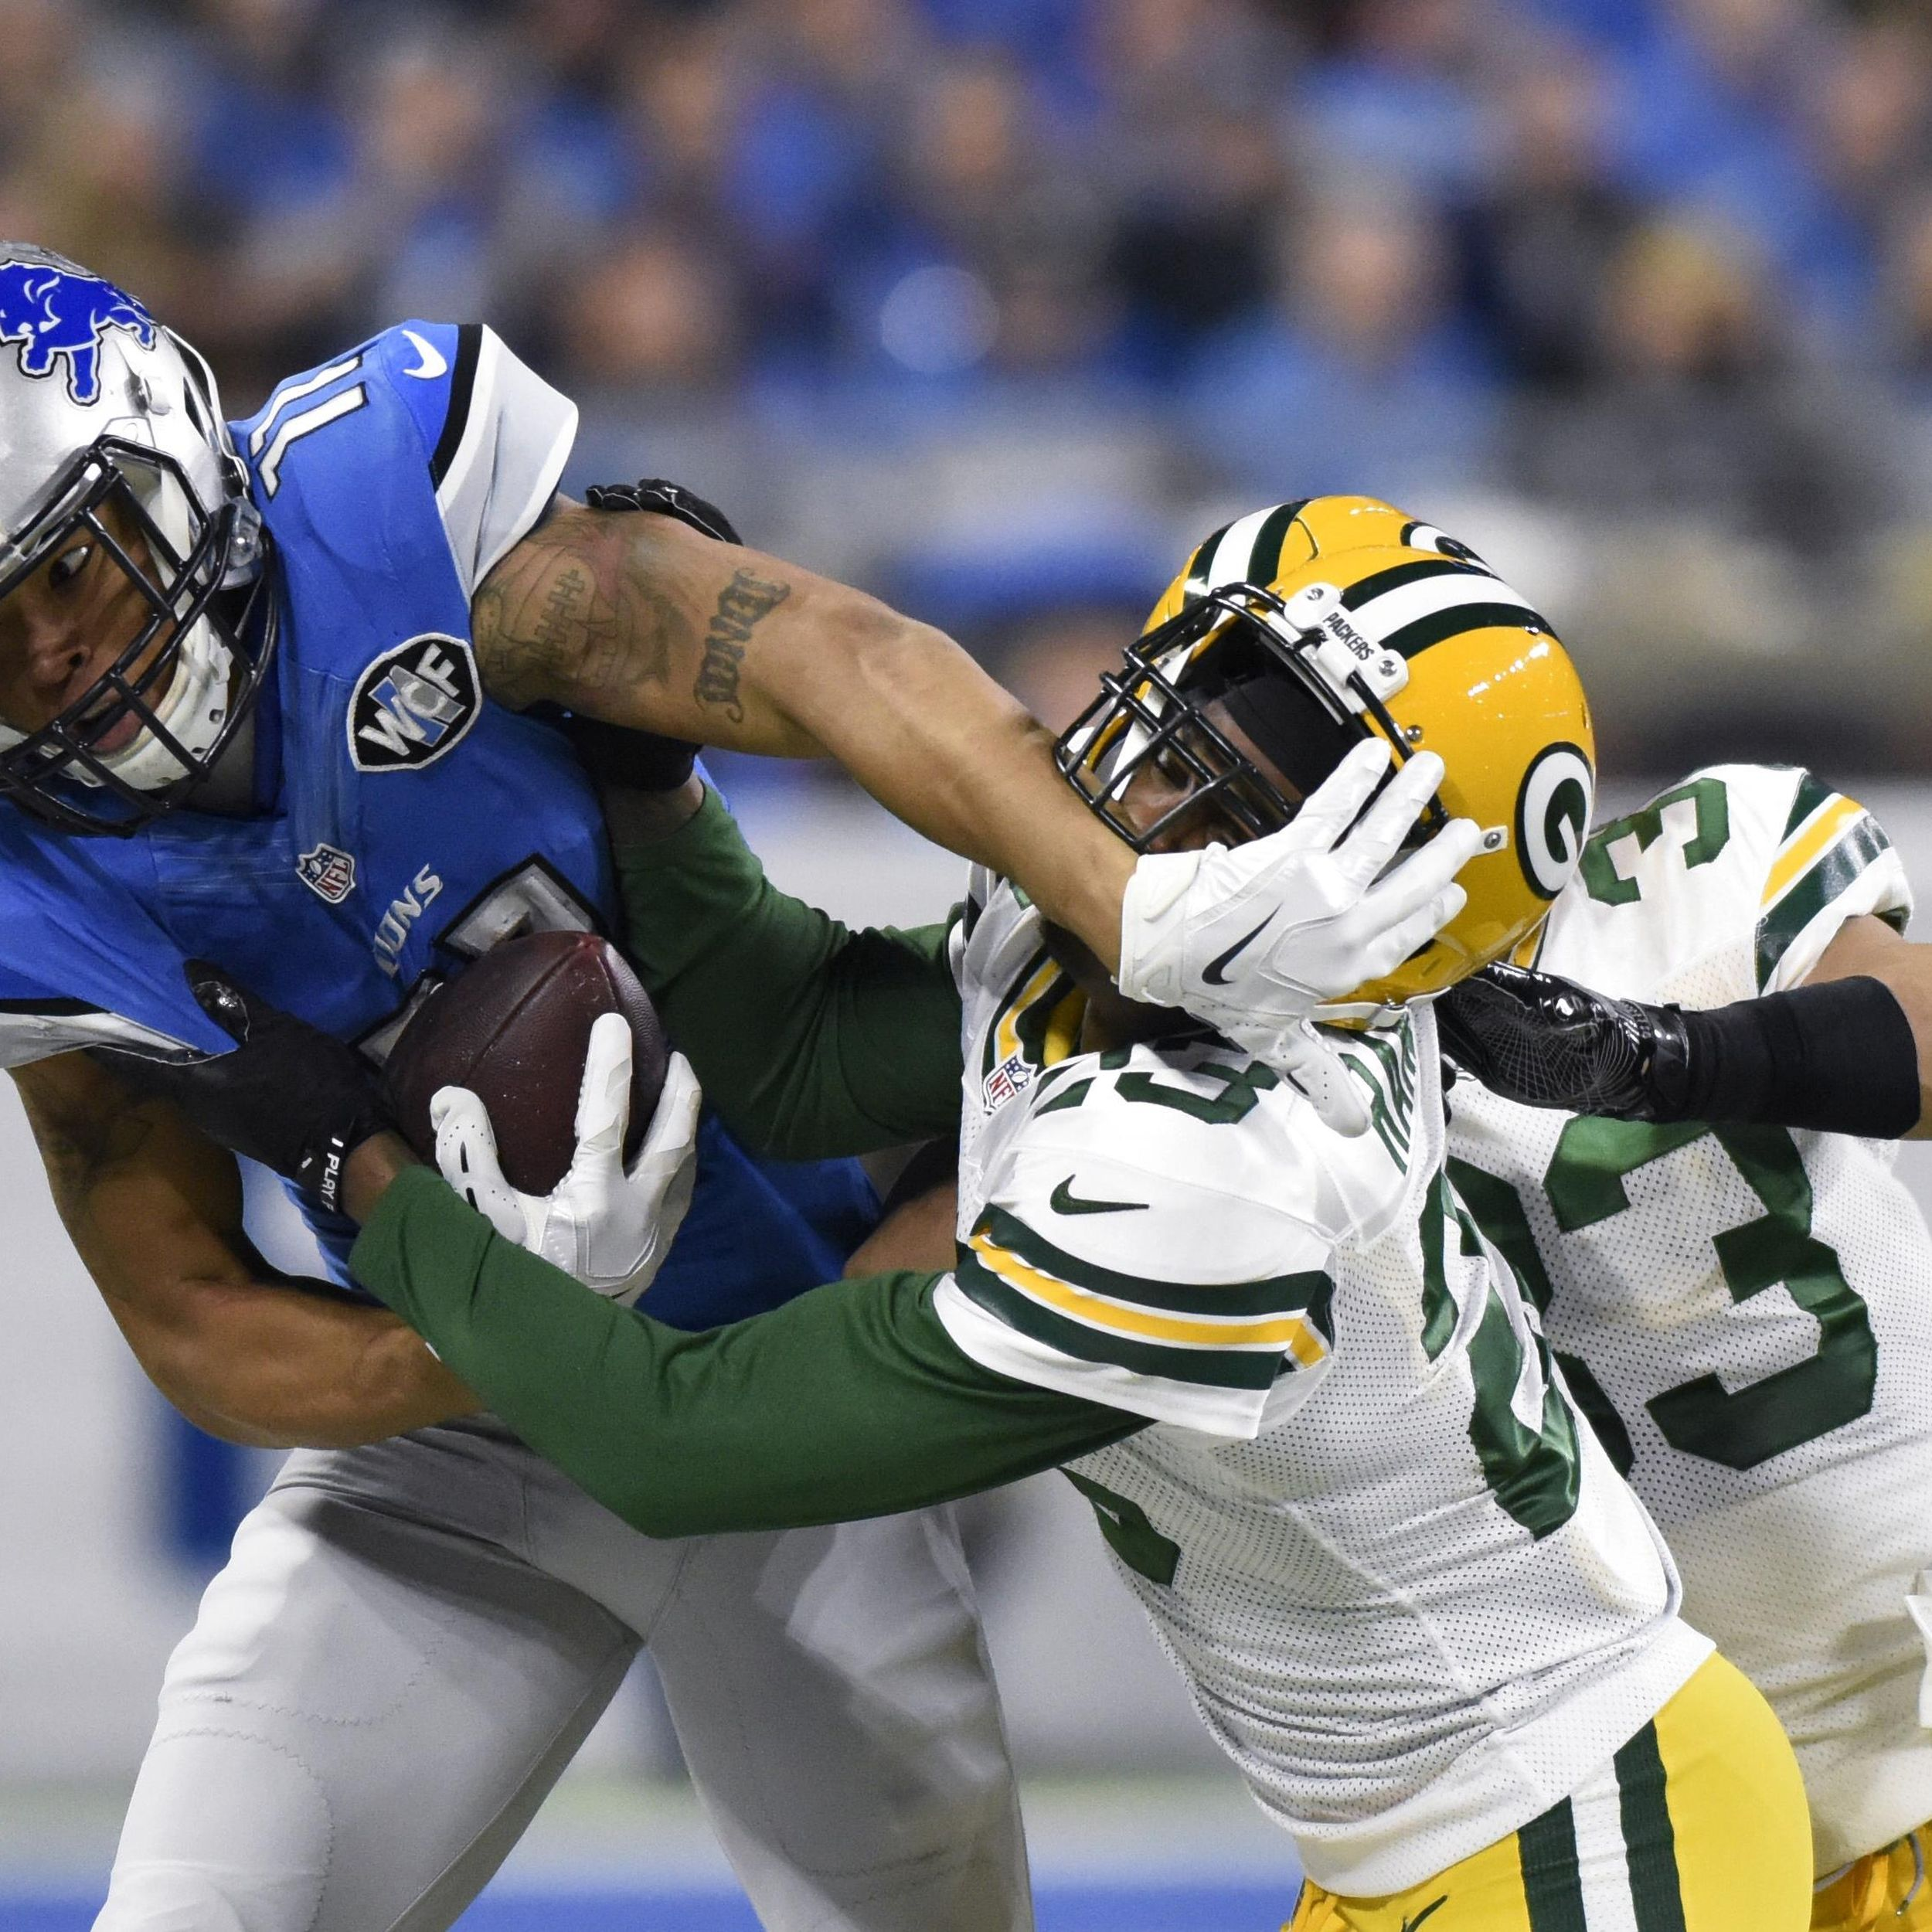 Nfl Roundup Detroit S Loss To Packers Sends Lions To Seattle For Playoffs The Spokesman Review